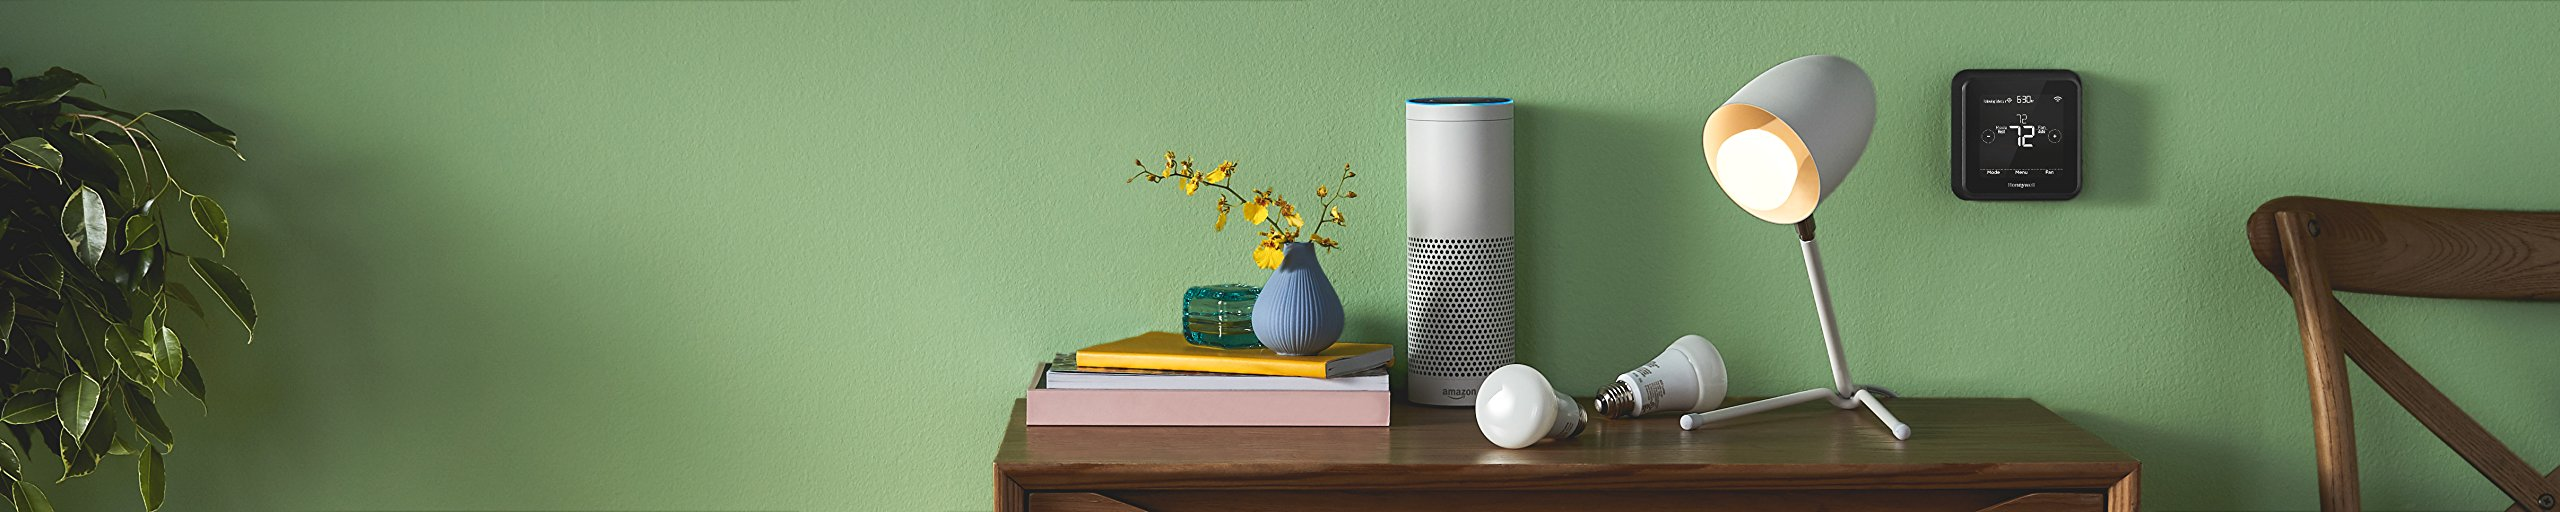 Philips Hue 464479 60W Equivalent White and Color Ambiance A19 Starter Kit, 3rd Generation, Works with Amazon Alexa by Philips (Image #4)